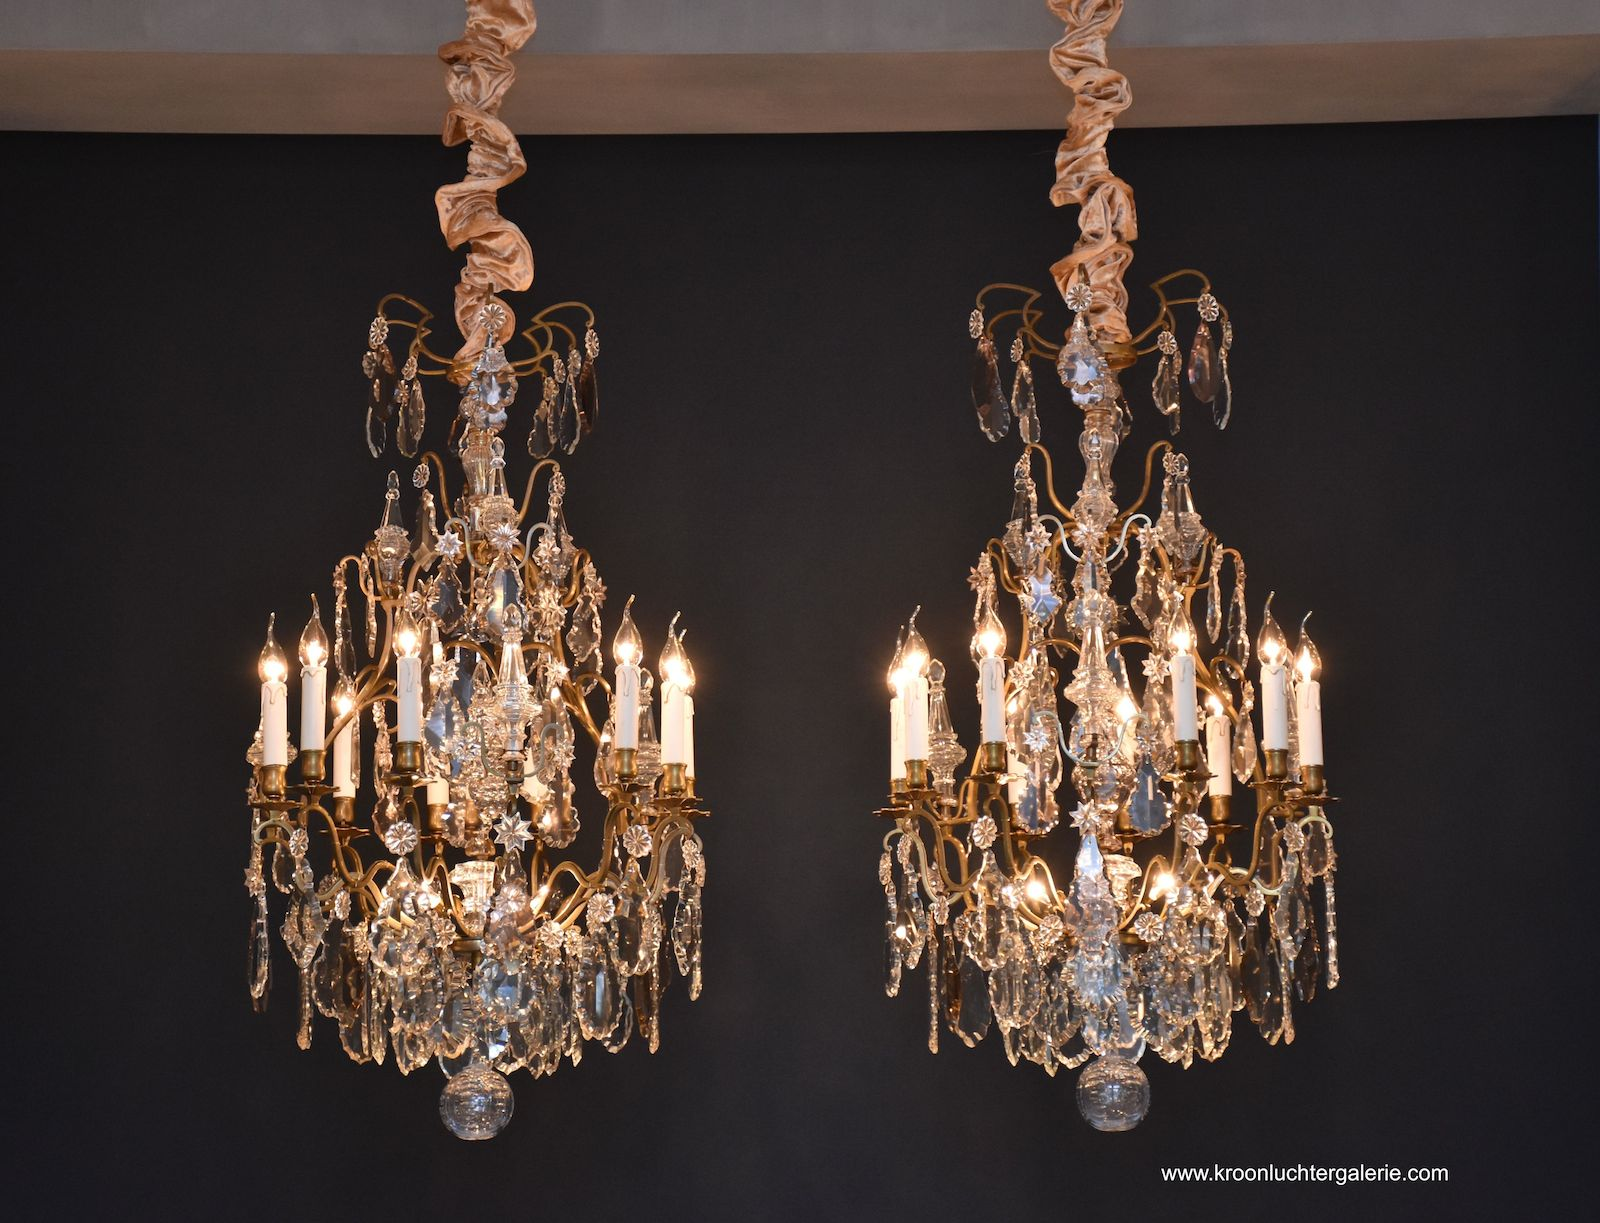 A pair of French chandeliers in the style of Louis XV